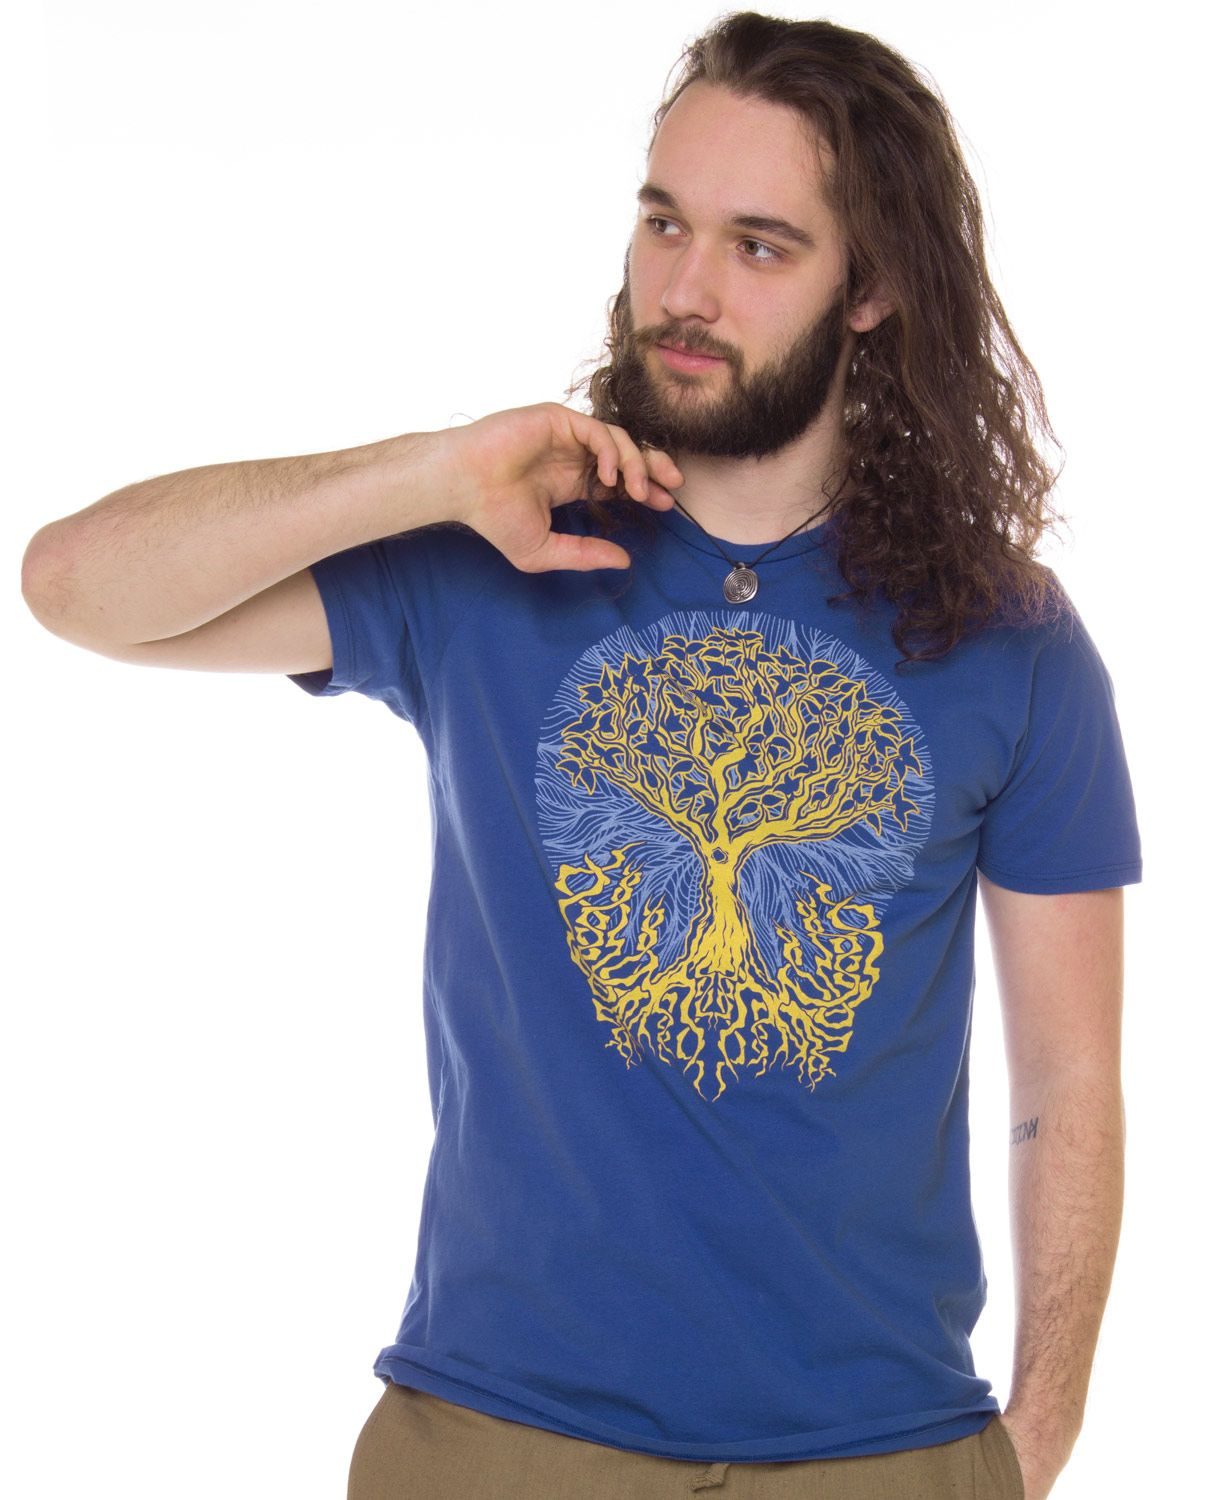 Tree of Life Men's Organic T-shirt: Soul Flower Clothing